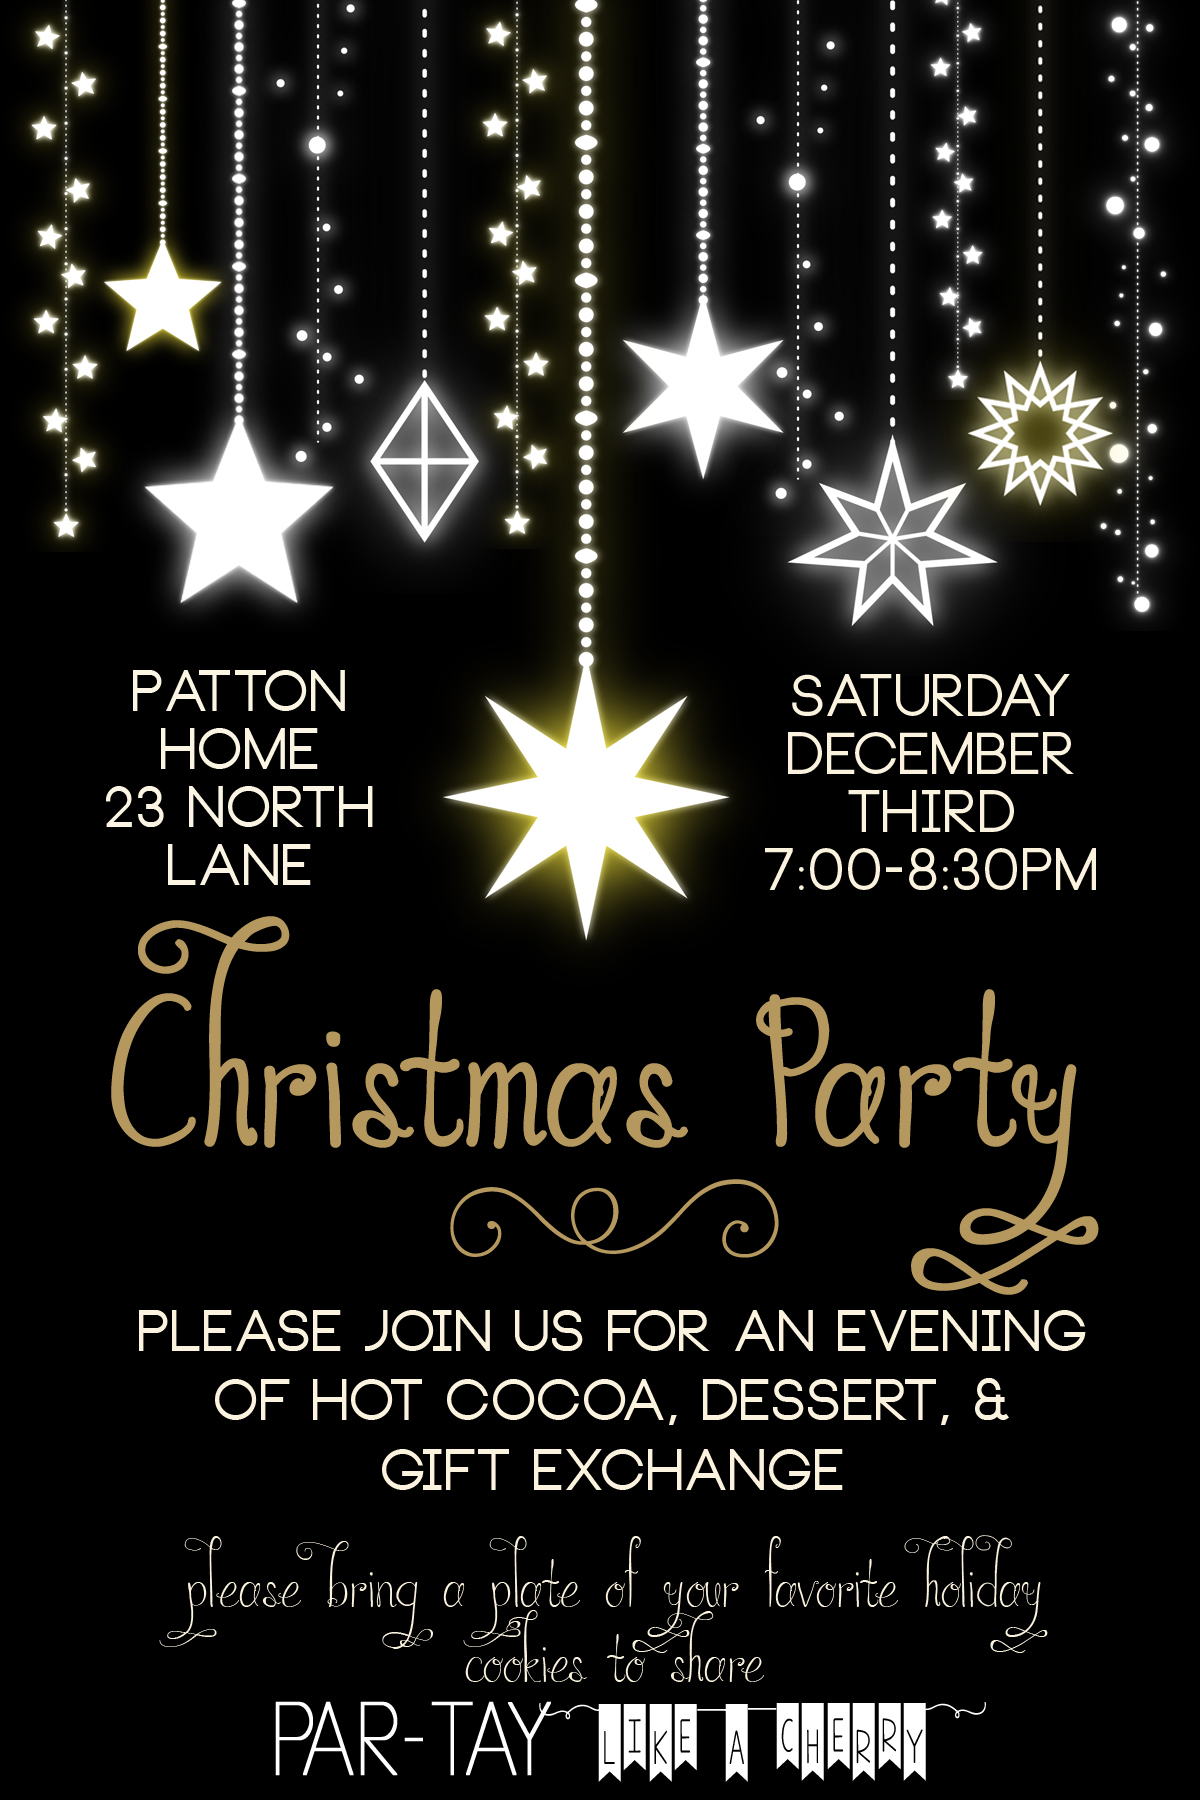 Free christmas party invitation party like a cherry for New year invite templates free